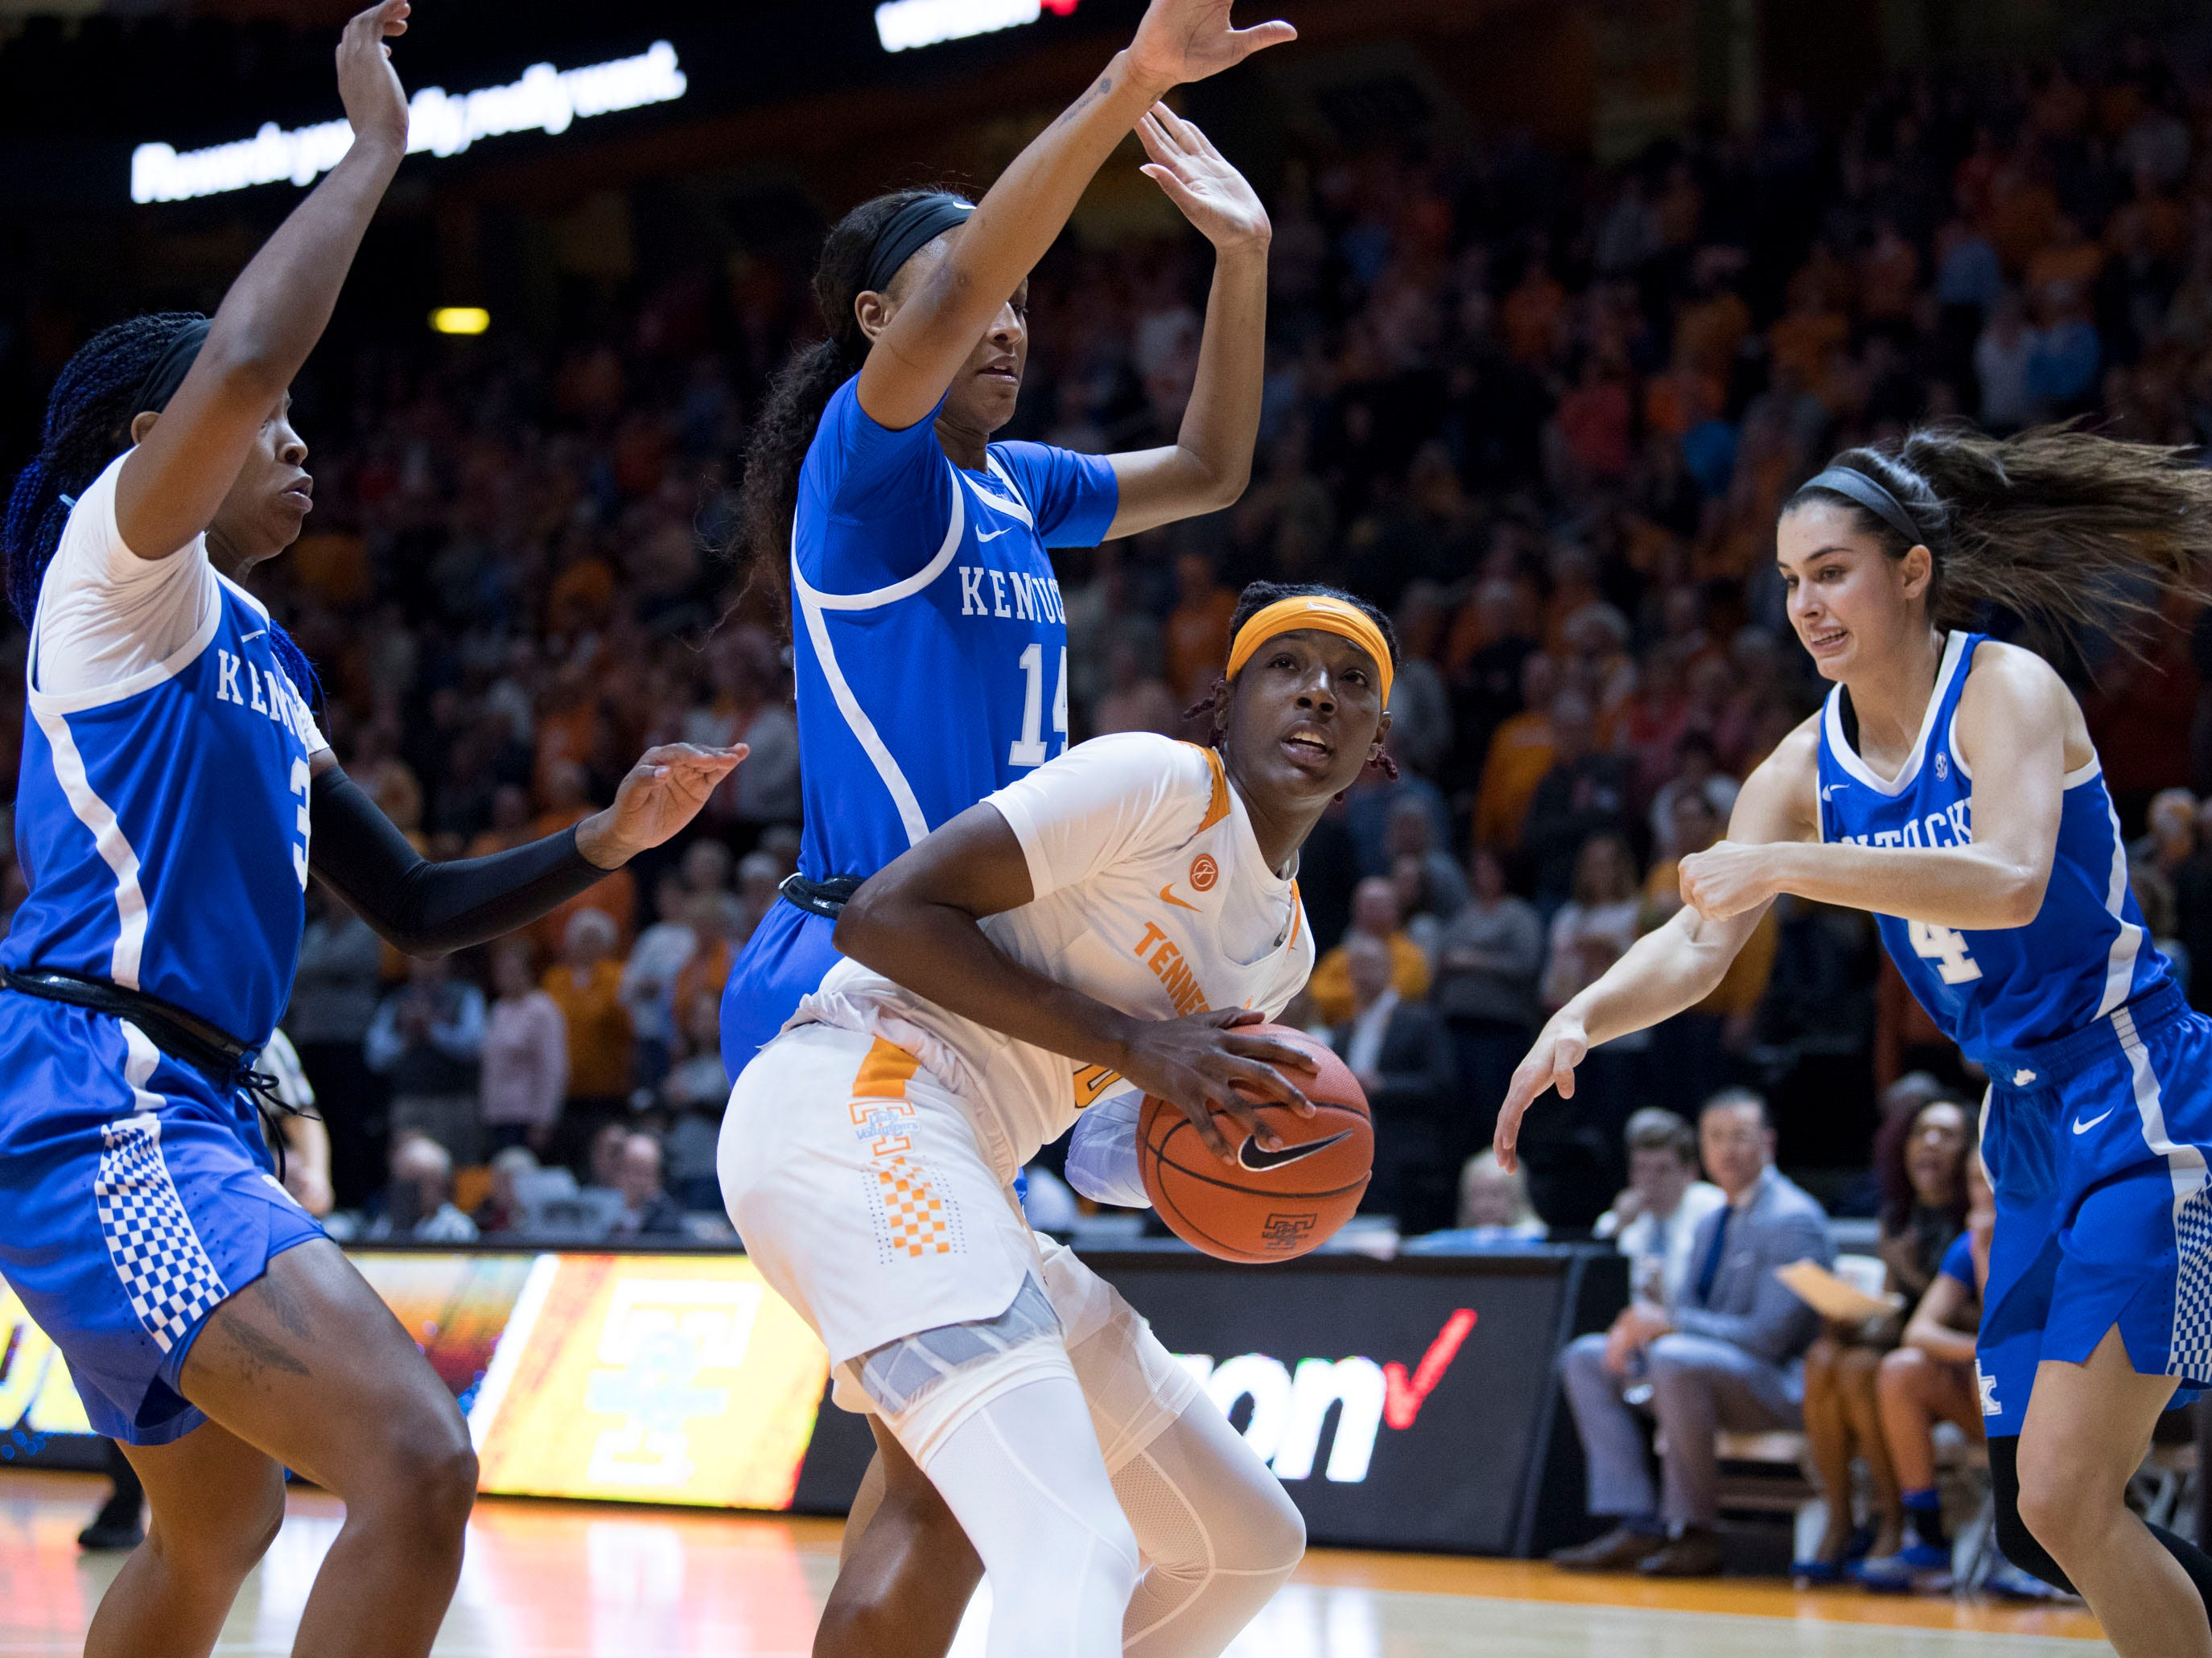 Tennessee's Rennia Davis (0) is guarded by Kentucky's KeKe McKinney (3), Tatyana Wyatt (14), and Maci Morris (4) on Thursday, January 10, 2019.